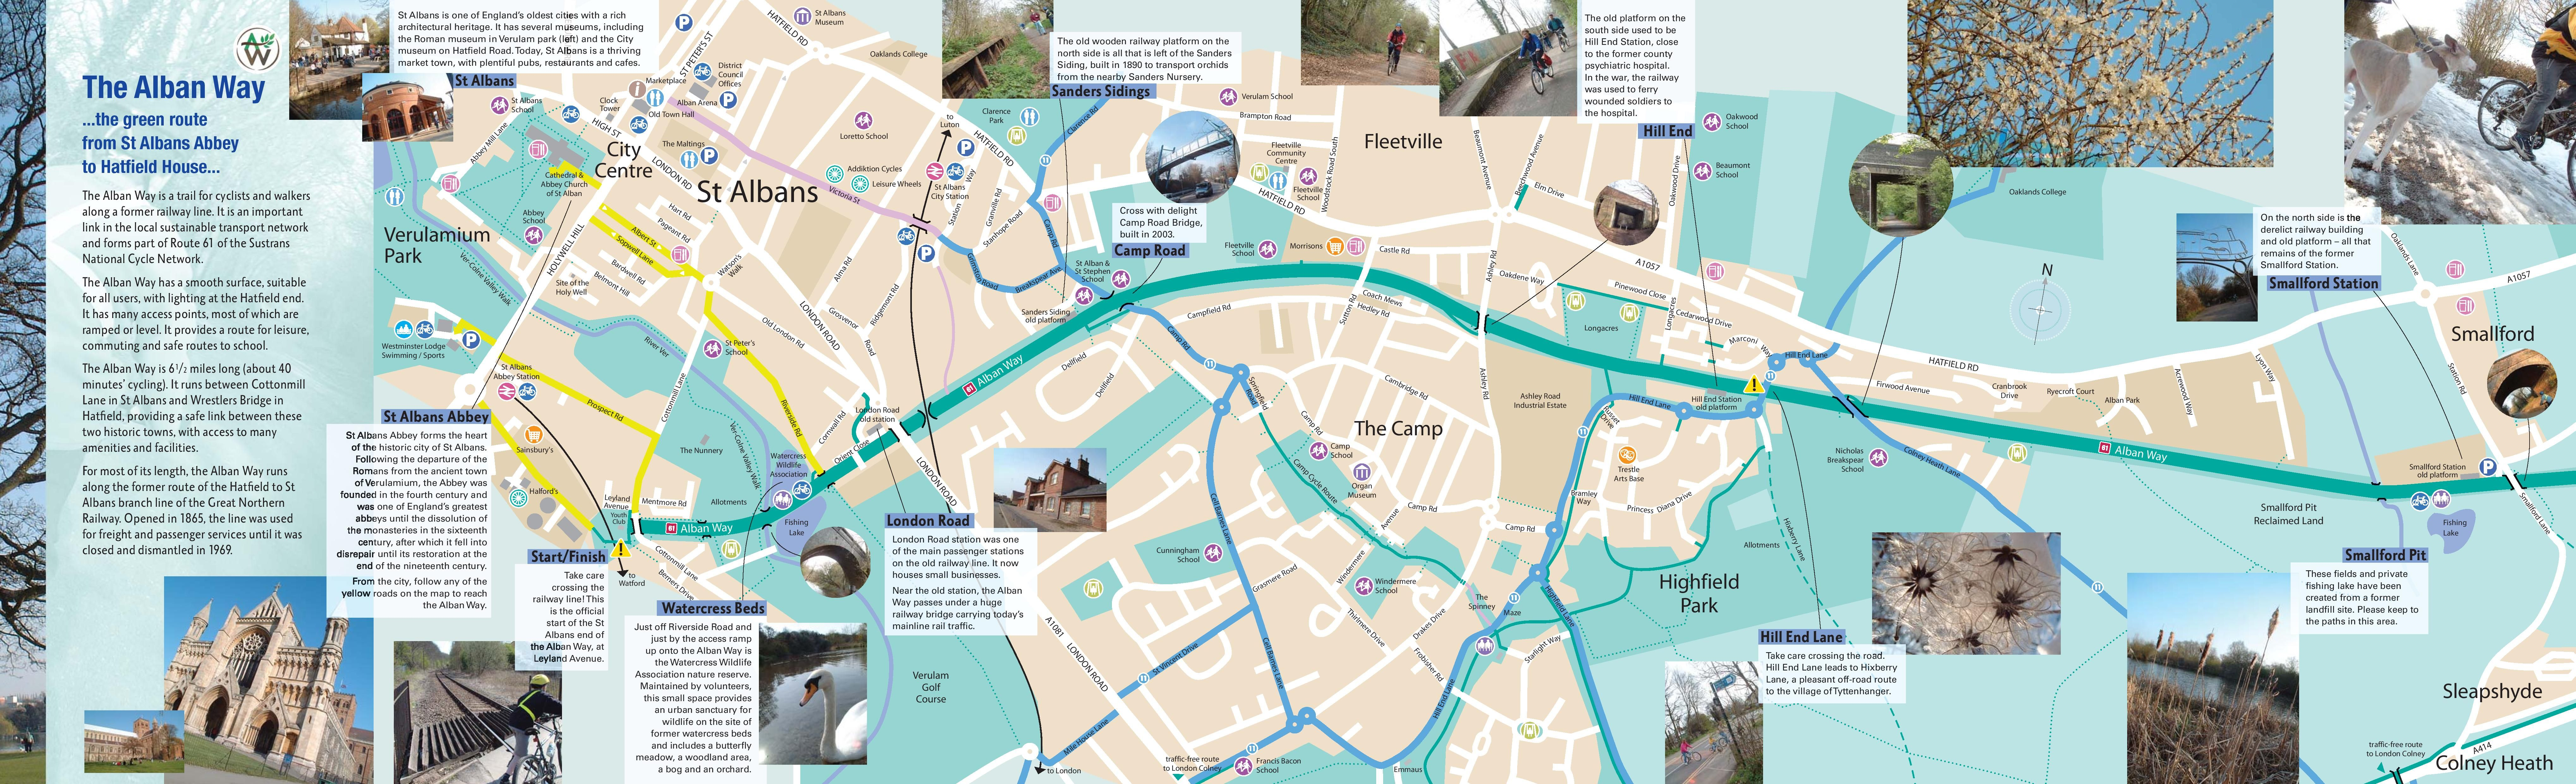 Alban Way P2 St Albans Abbey to